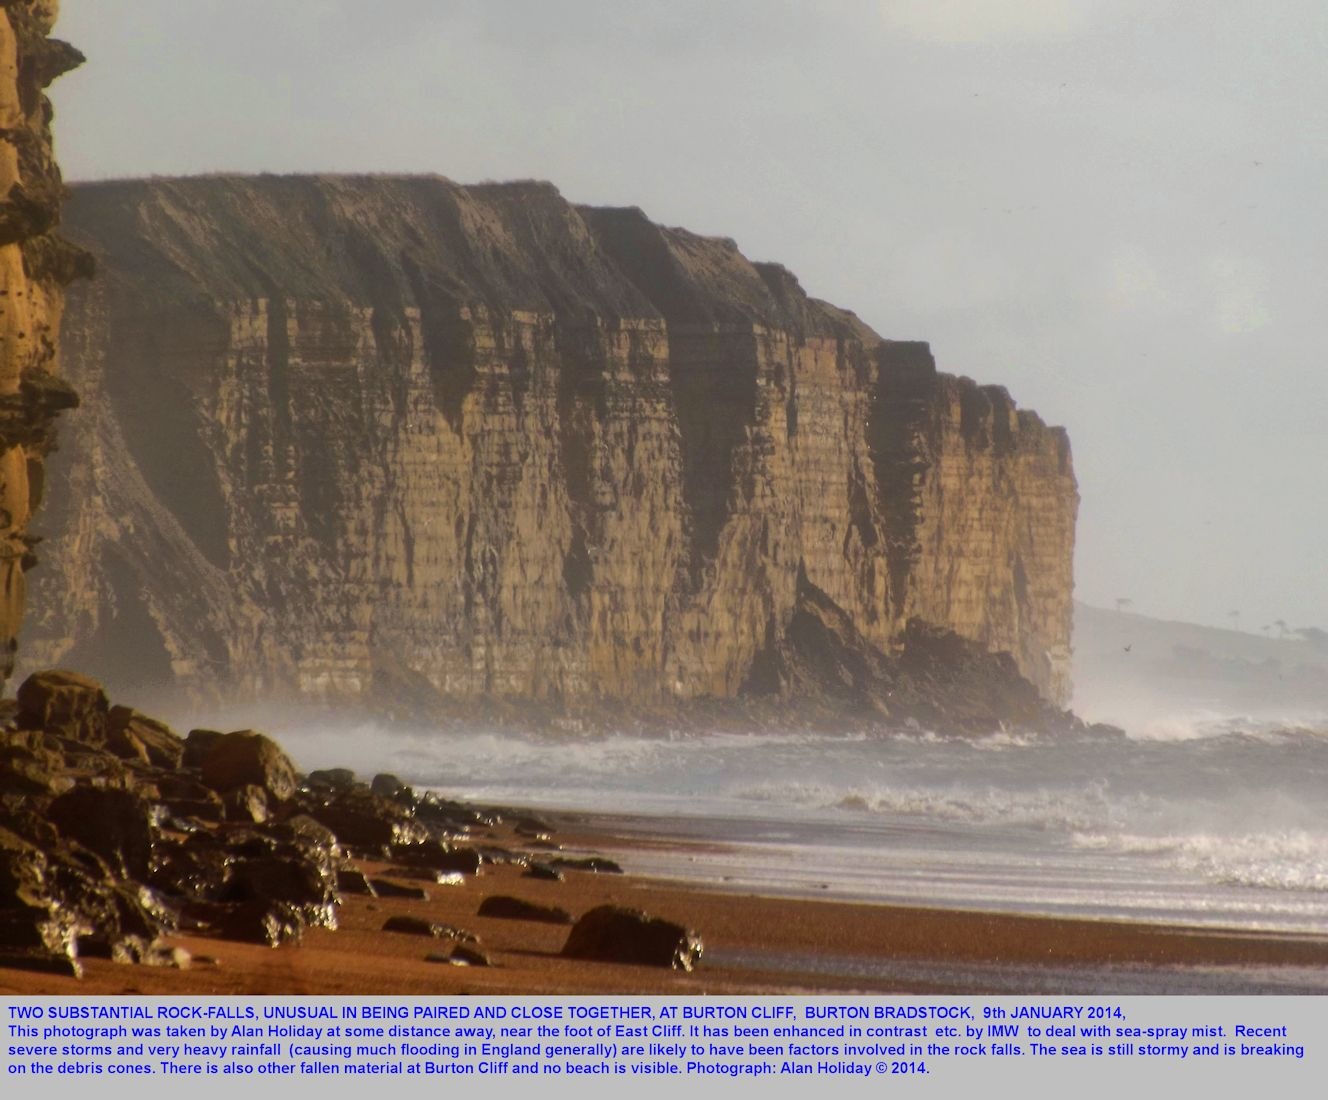 A view from East Cliff of distant Cliff, Burton Bradstock, with two new and large rock-falls, 9th January 2014, Alan Holiday photograph